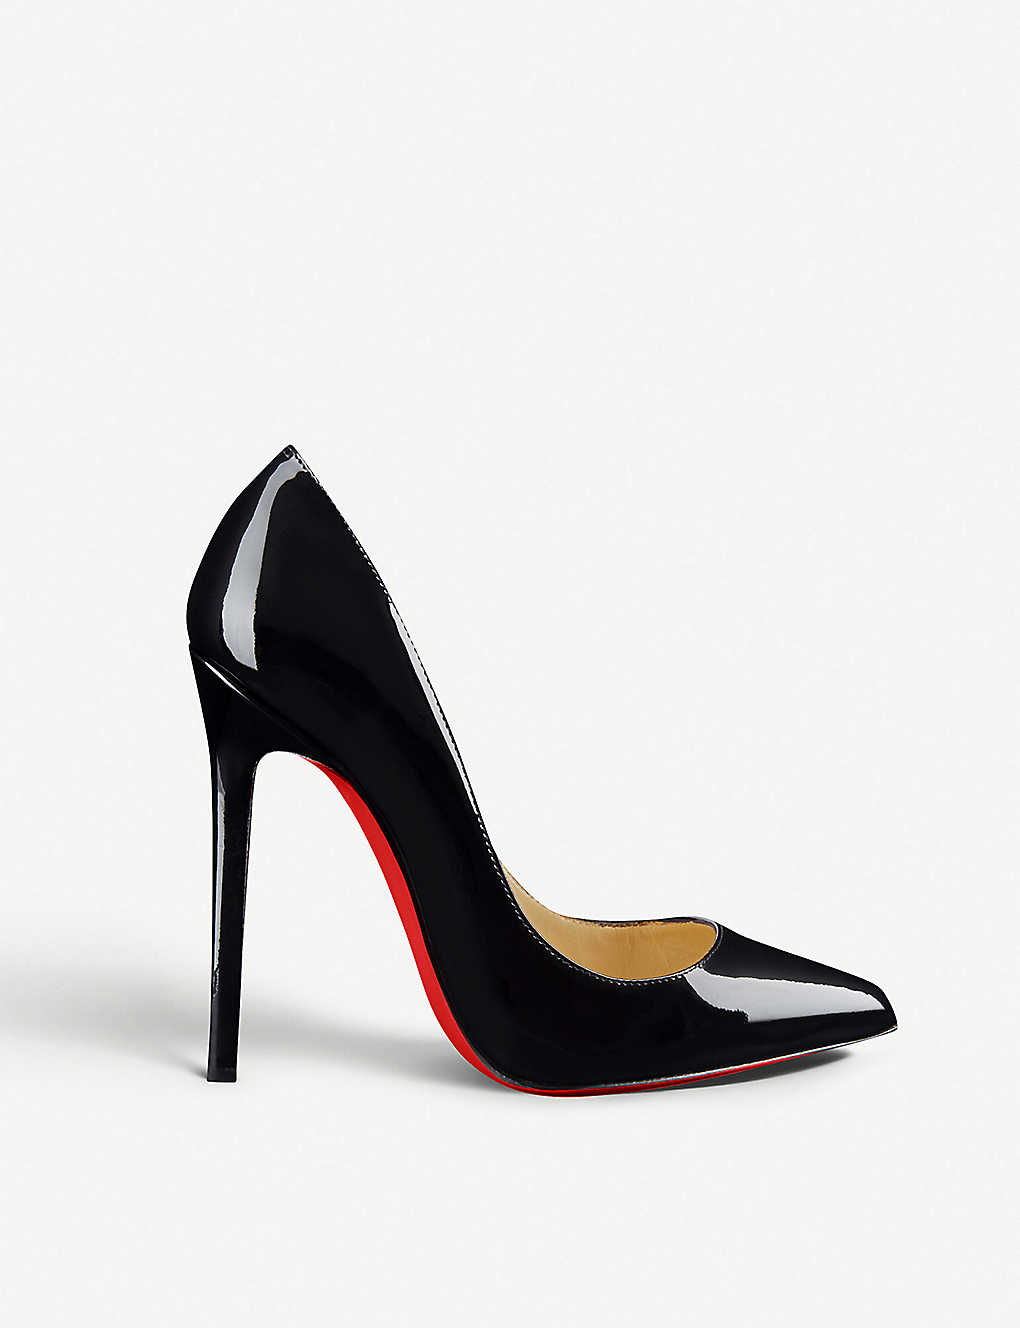 christian louboutin ladies shoes prices